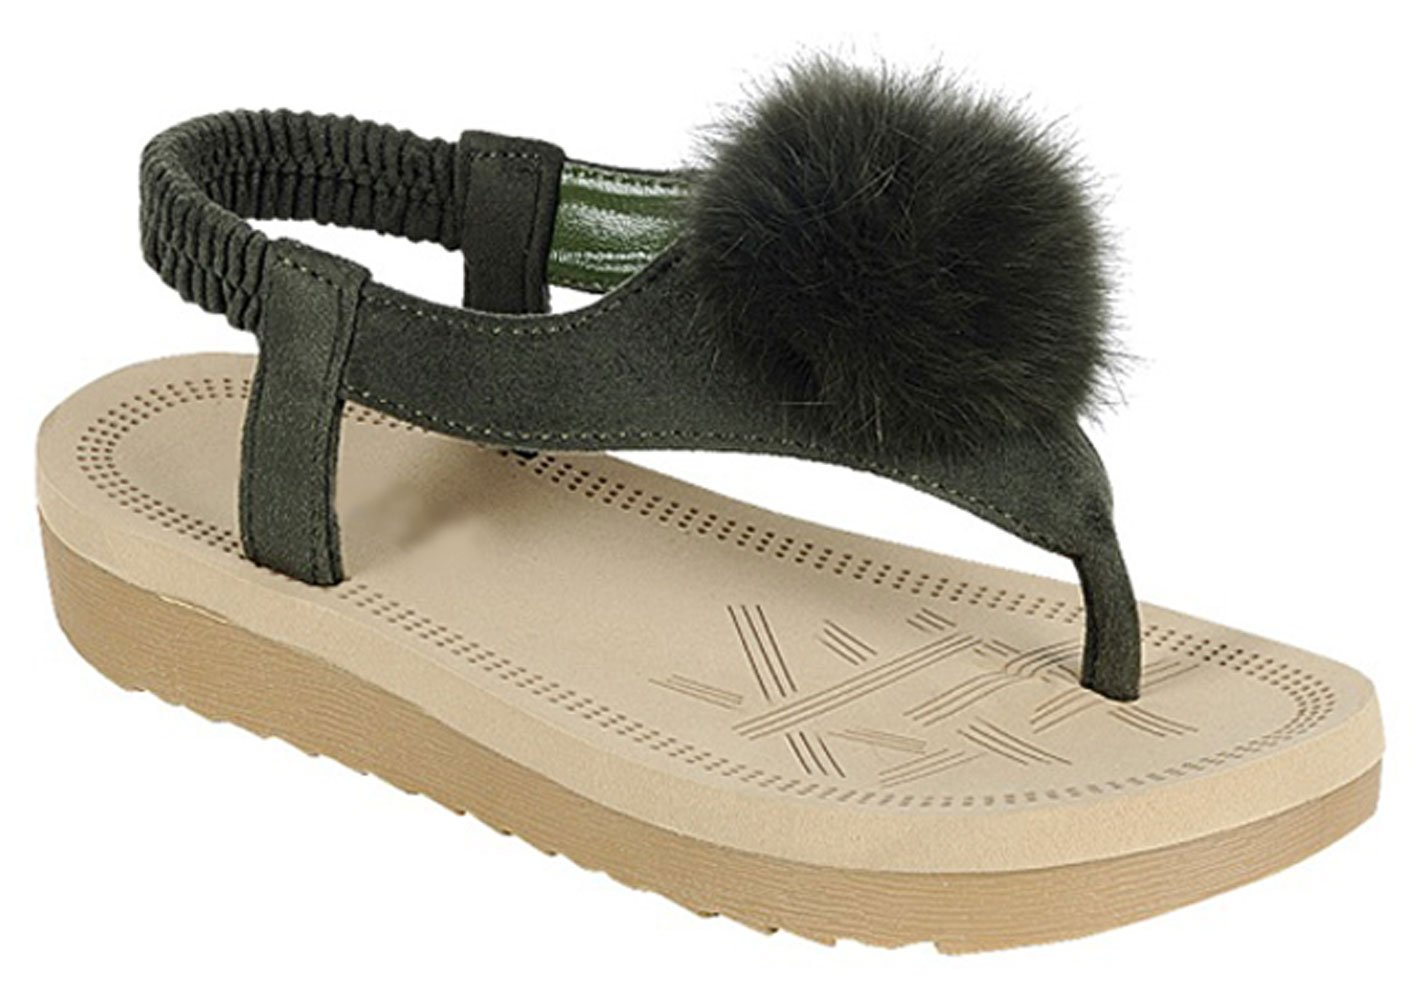 Top Selling Olive Slingback Fur Tassel Pom Pom Vegan Suede Leather Fuzzy Tstrap Flat Easy Slip On Wedge Ver Zapatos De Mujer Cool Comfortable House Thong Sandal Sale Women Ladies (Size 5.5, Olive)